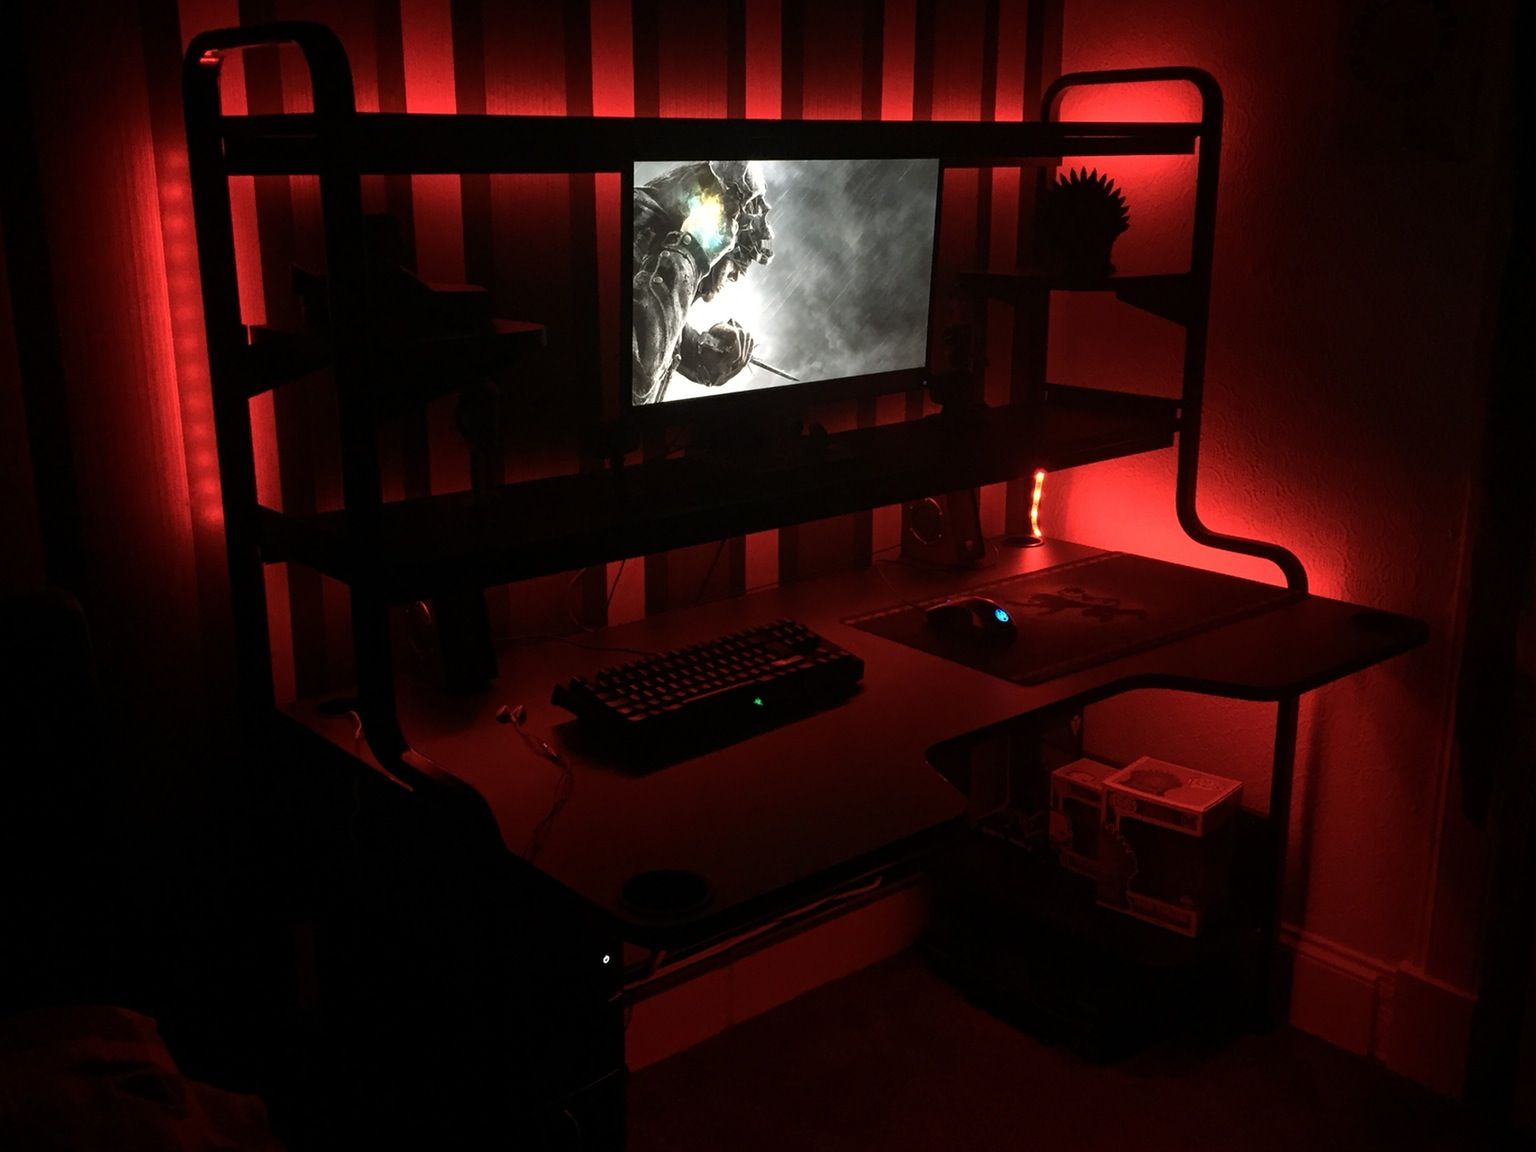 Loving My New Ikea Fredde Desk With Dioder Led Lights And Harte Usb Led Lamp Man Cave Is Coming Together Nicely Gaming Room Setup Room Setup Homer Office